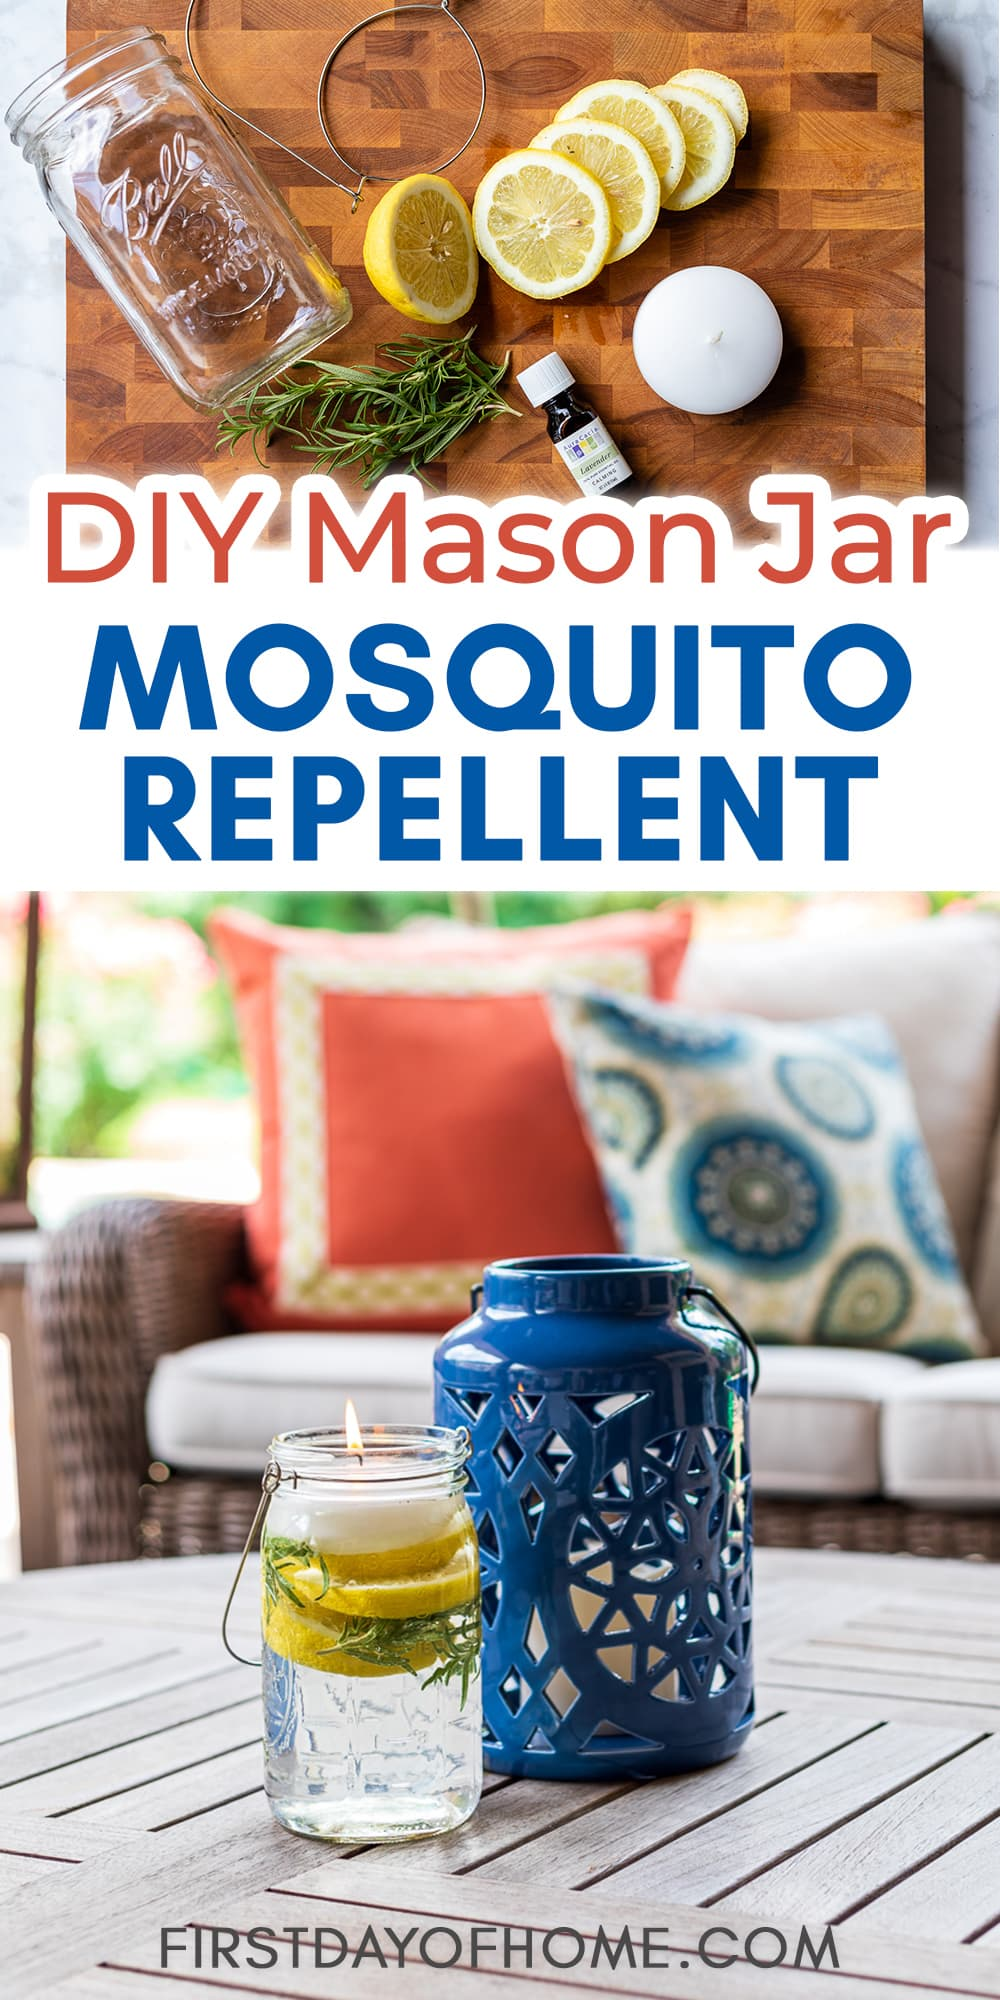 """Mosquito repellent mason jar luminary with lantern and text overlay reading """"DIY Mason Jar Mosquito Repellent."""" Also pictures the ingredients for making the luminary."""